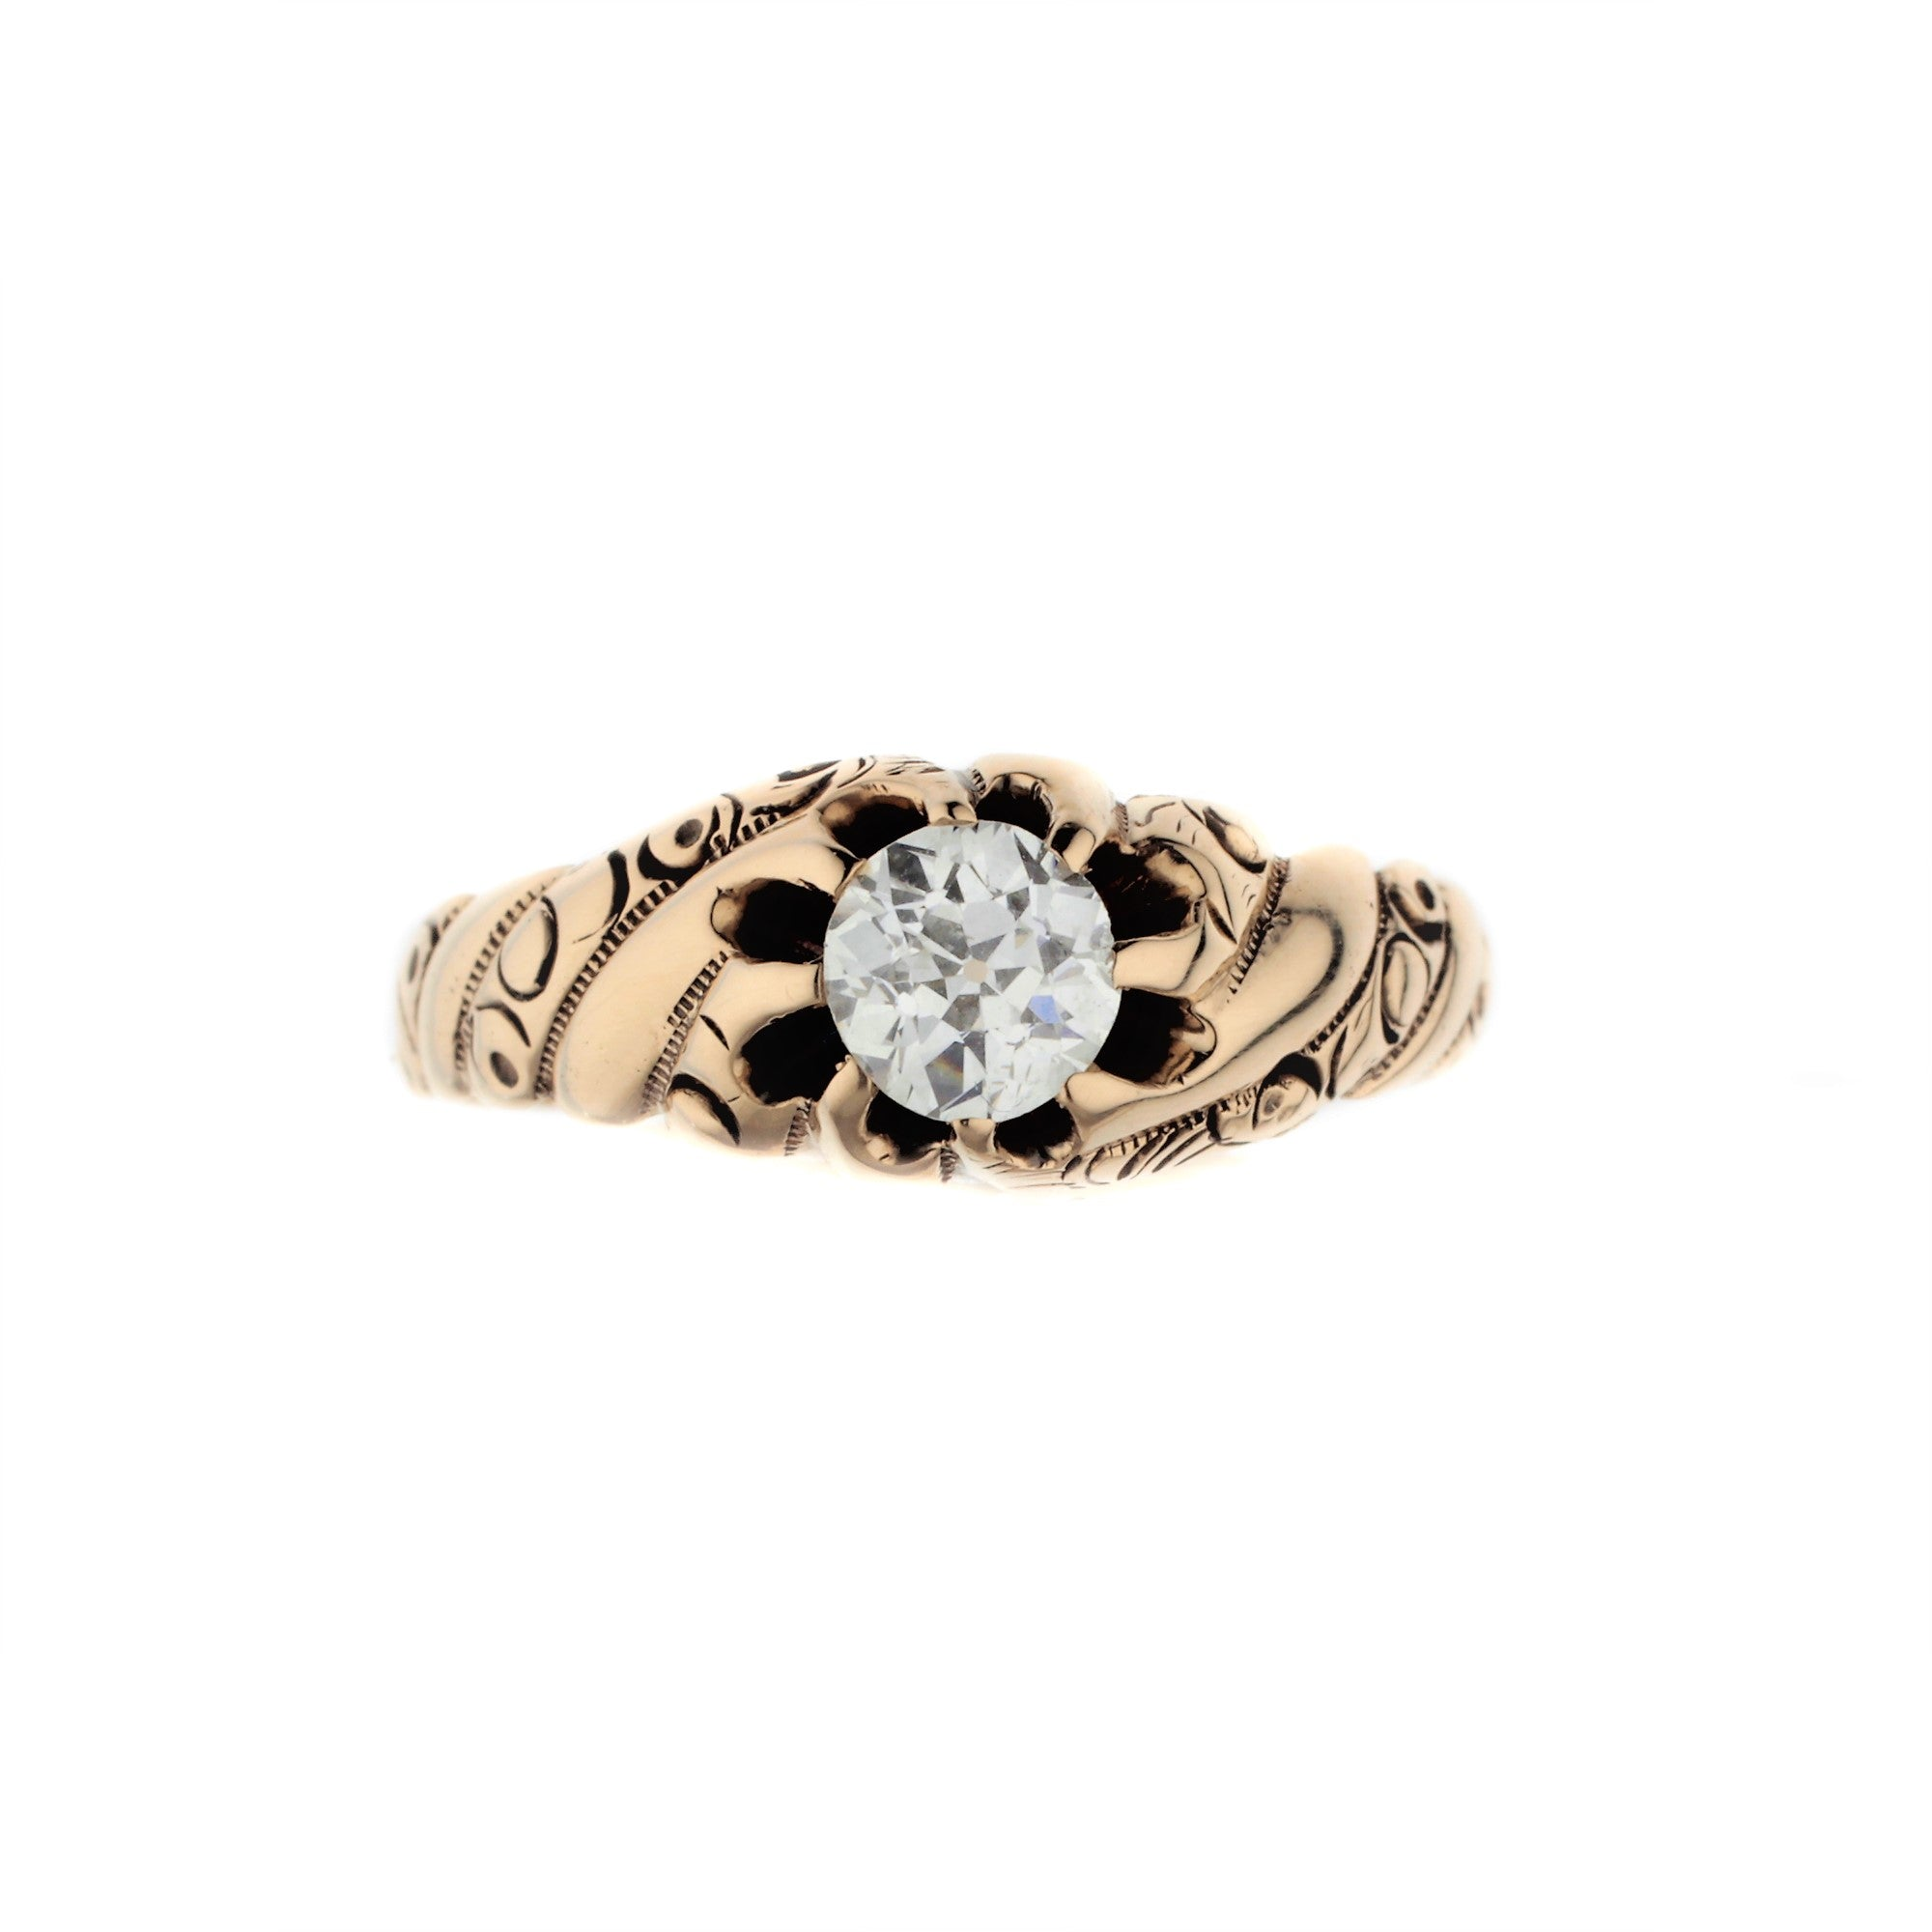 Antique Gentleman's Diamond Solitaire Ring